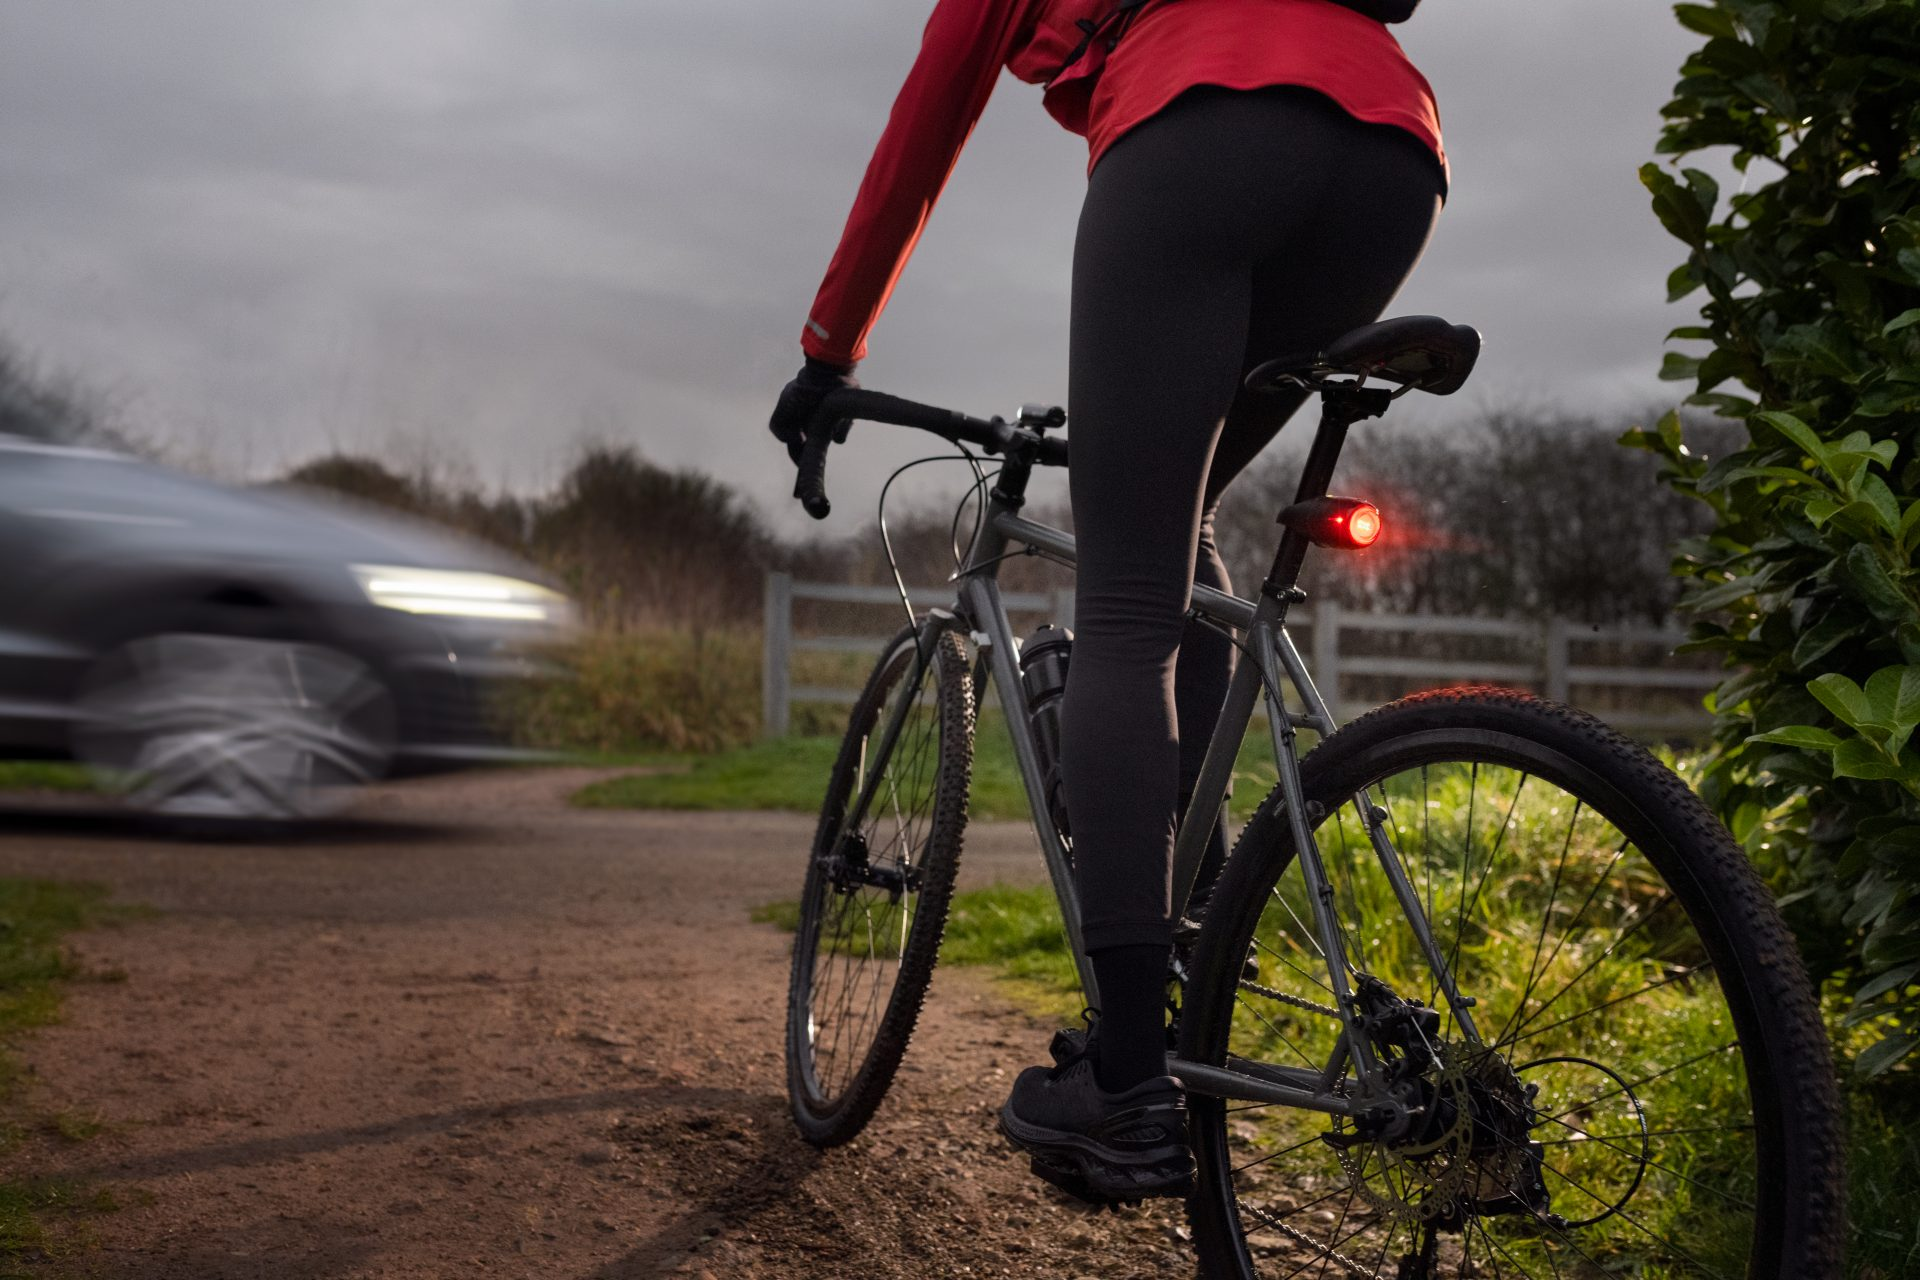 illustrative photo of the Curve Bike light shining brightly during a sudden brake